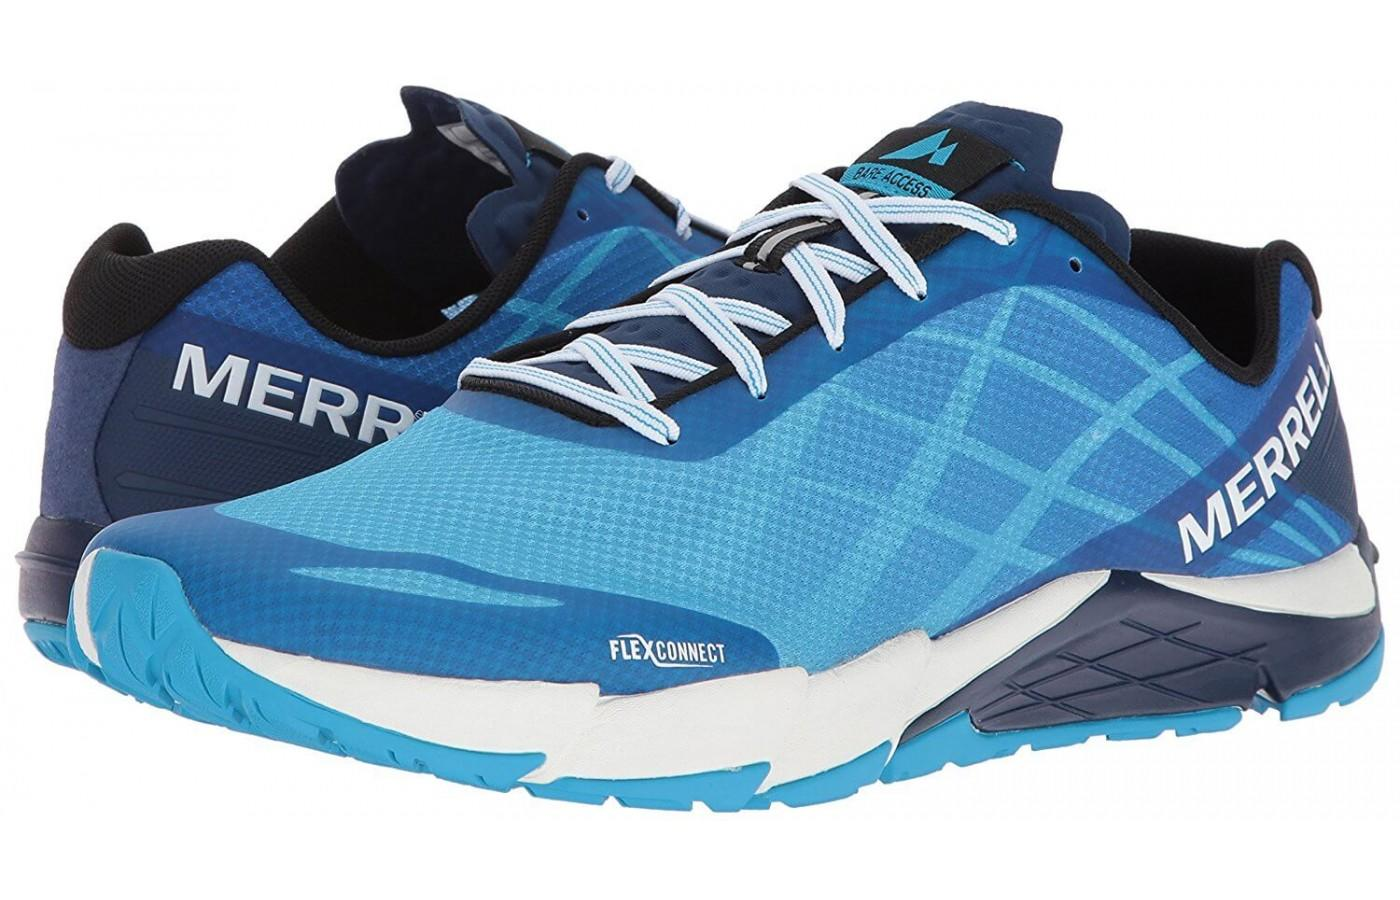 This minimalist shoe works great for the trail runner and road runner